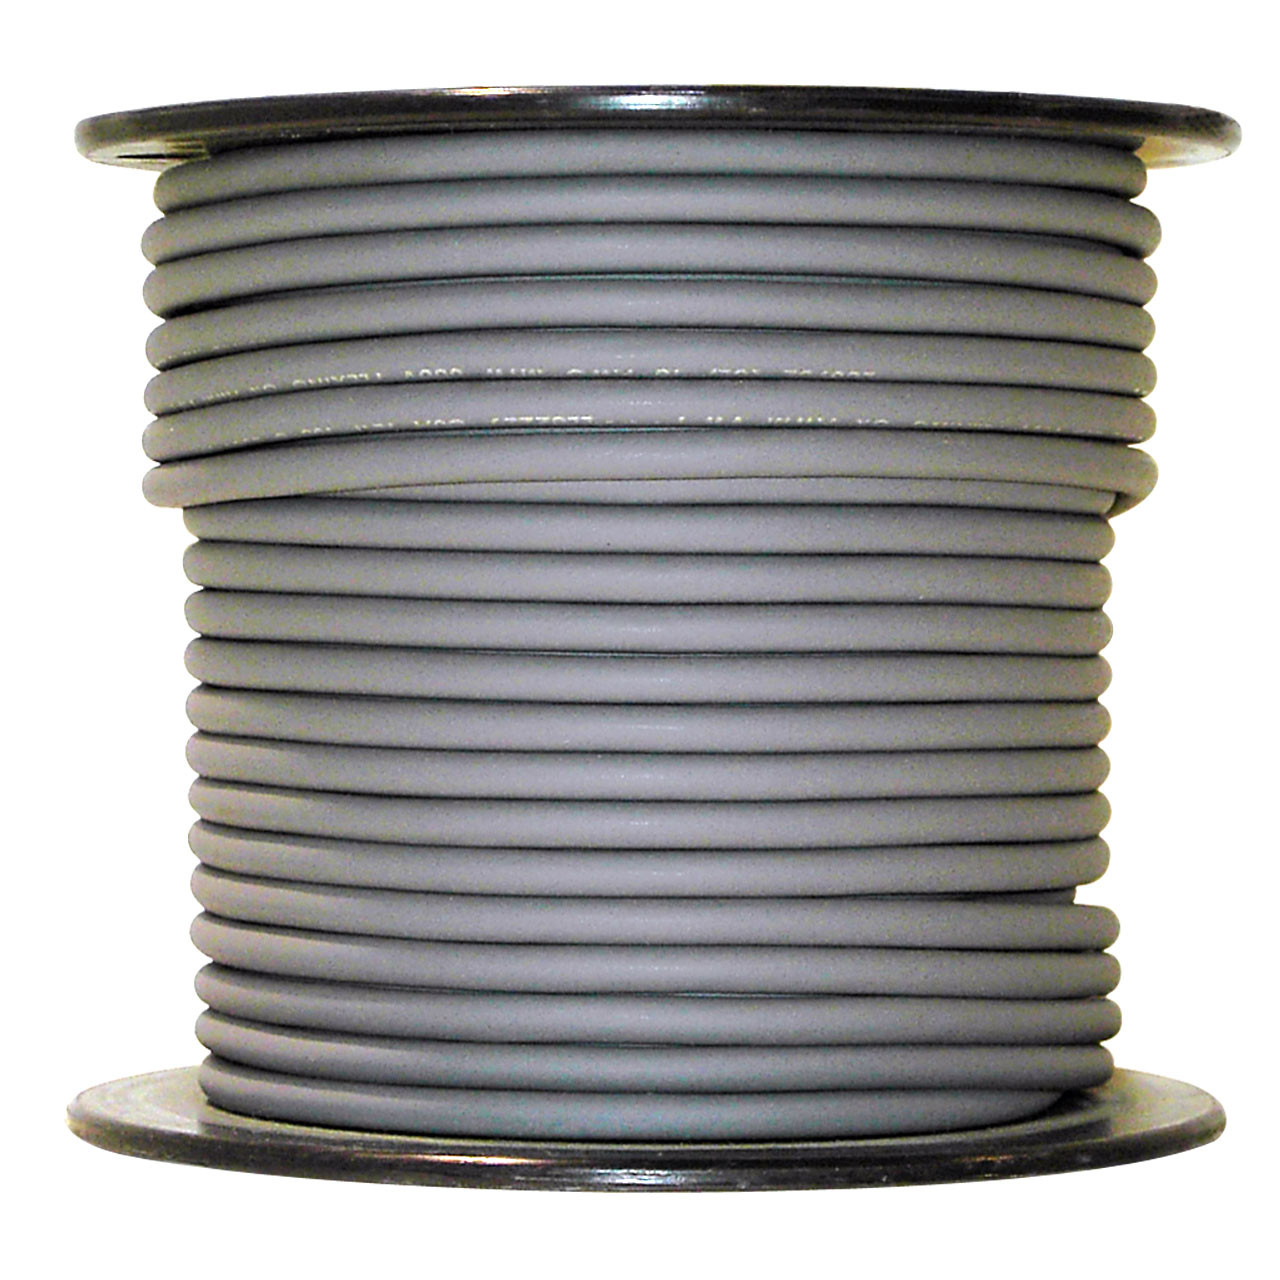 Arctic Ultraflex Blue Single Conductor Wire 100% copper tinned fine strand, 600v applications, 10 AWG Gray, 100 foot spool